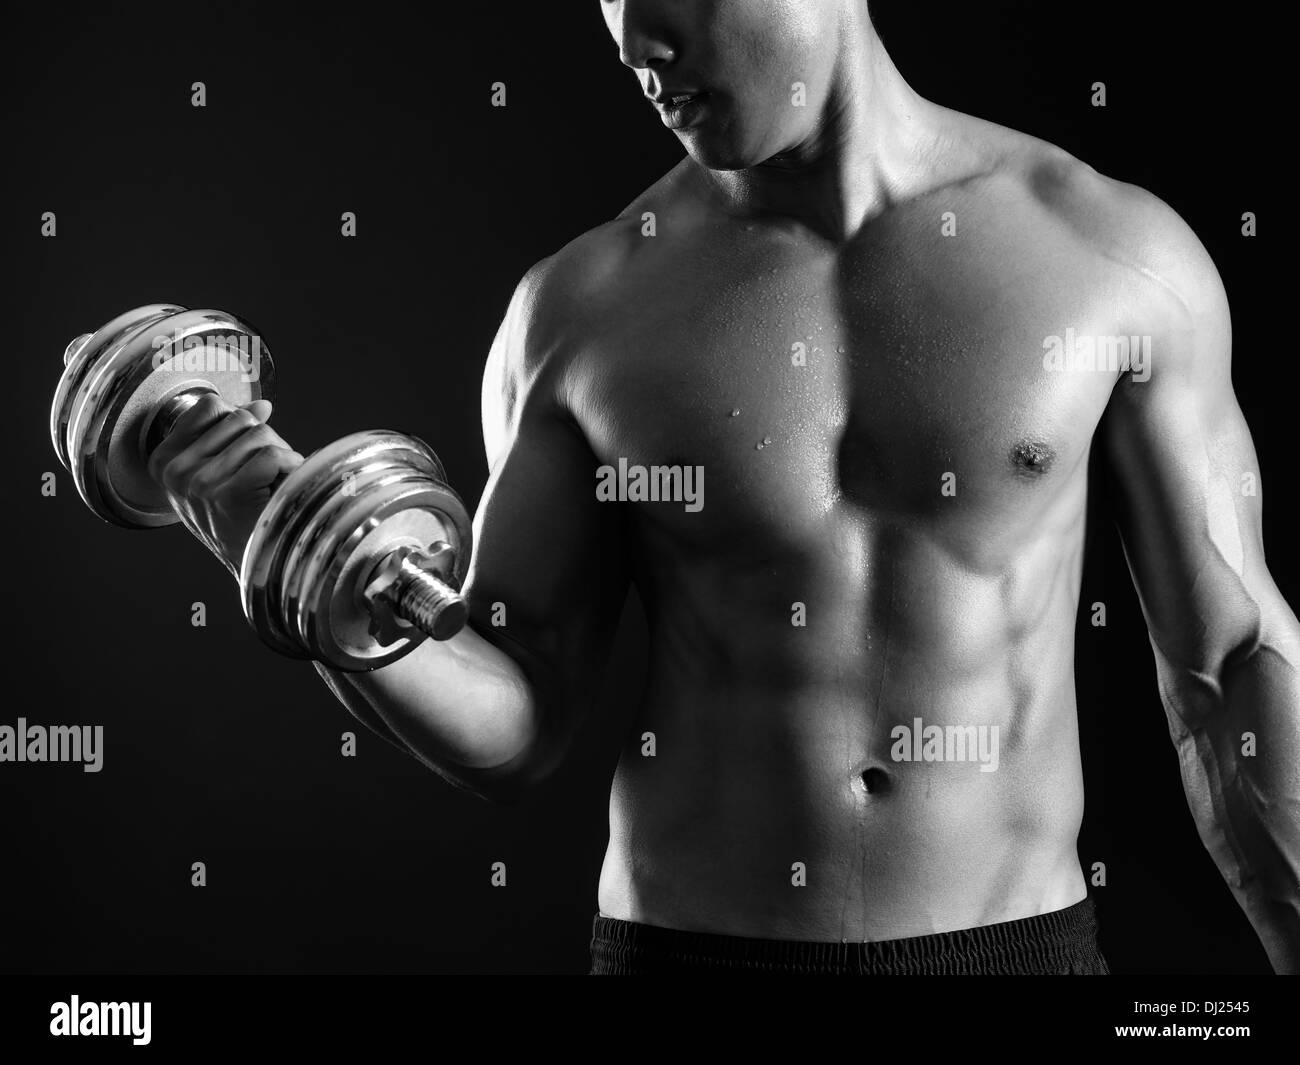 Photo of an Asian male exercising with a dumbbell and doing bicep curls over dark background. - Stock Image